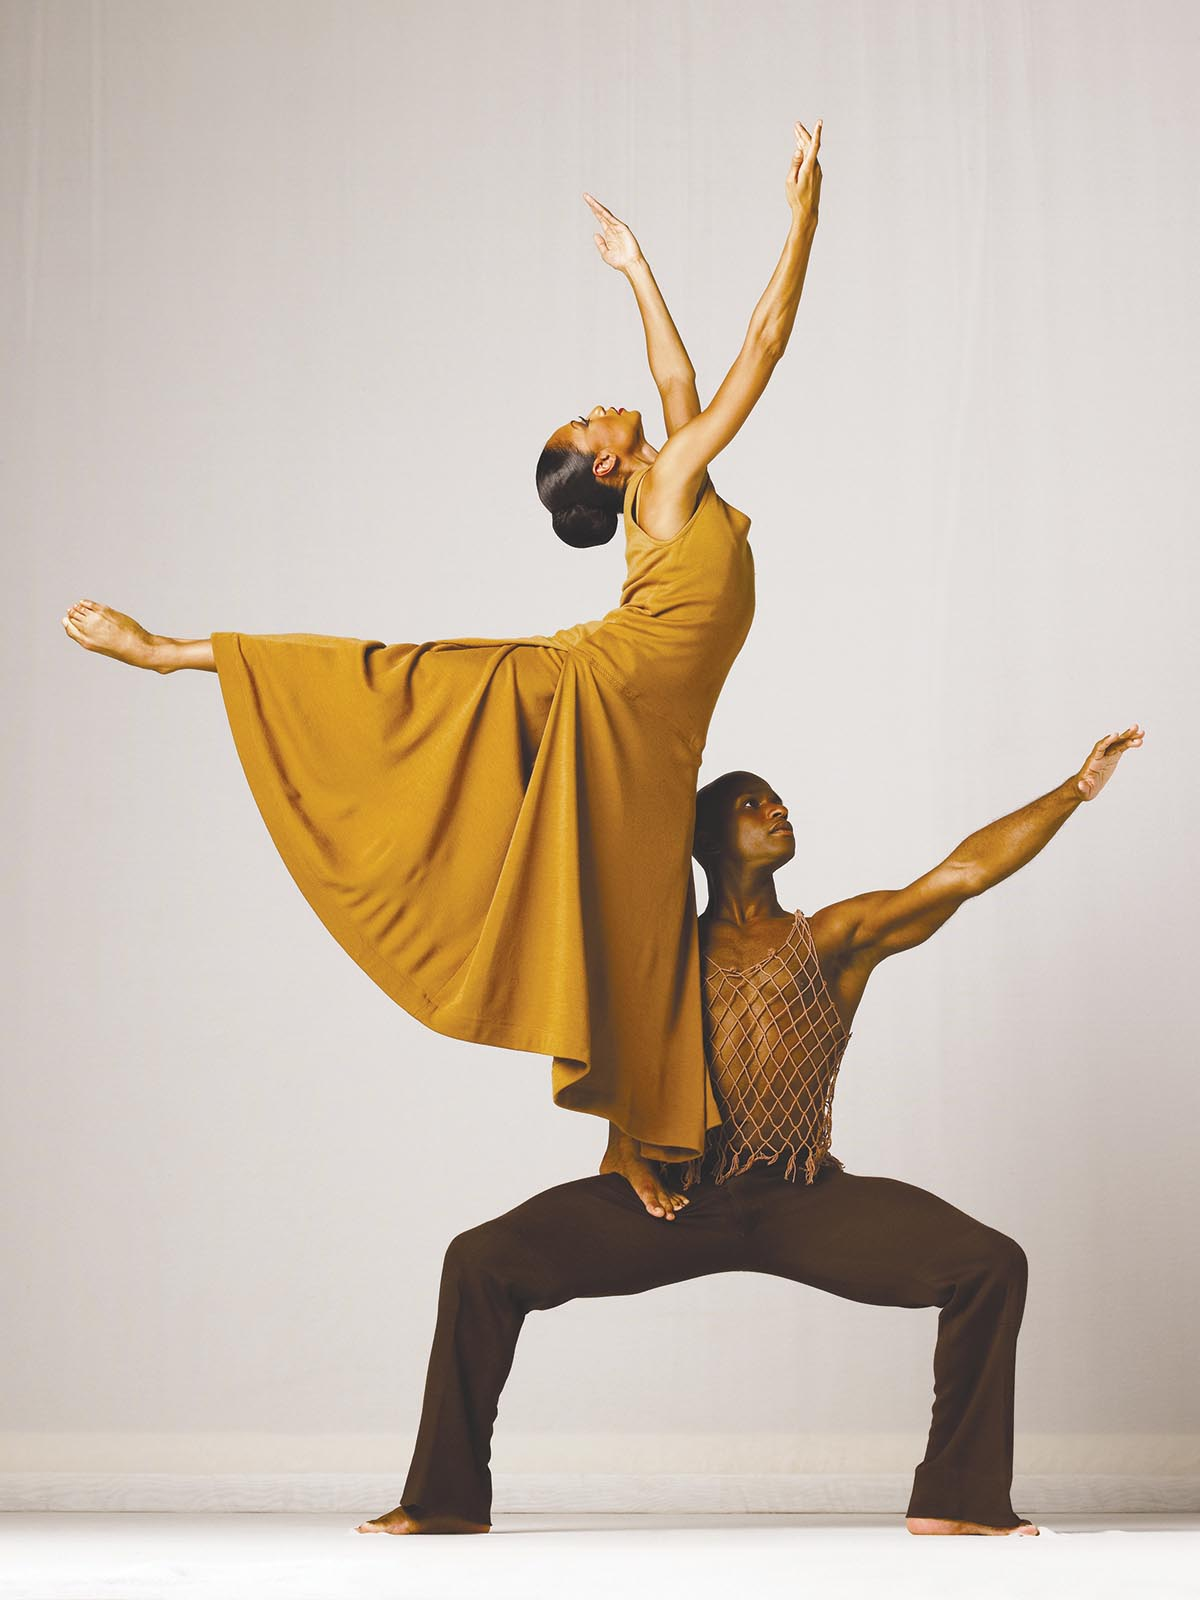 Alvin Ailey American Dance Theater's Linda Celeste Sims and Glenn Allen Sims in Alvin Ailey's REVELATIONS. Photo by Andrew Eccles